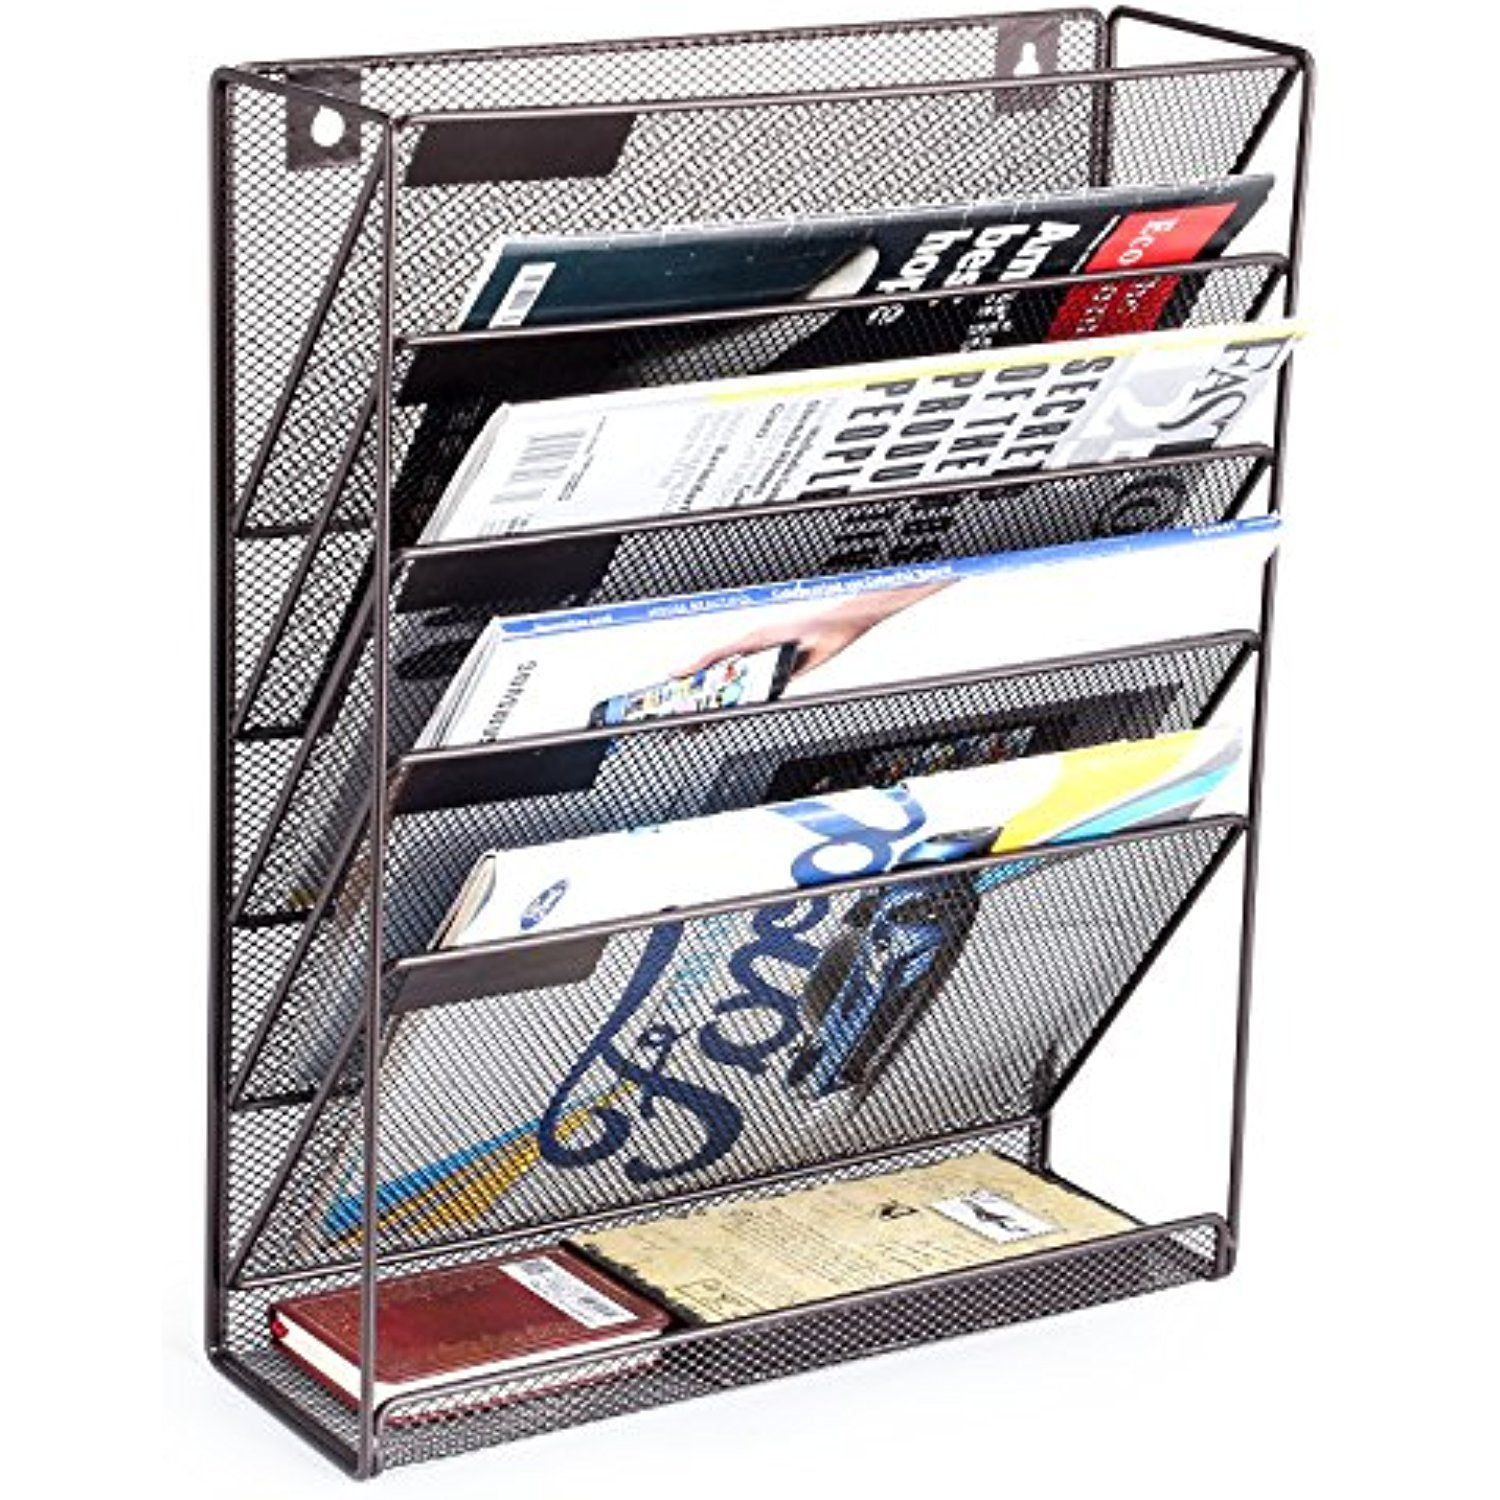 Mesh Metal Door Wall Mounted Paper Document Holder for Office Home 6 Tier,Gold Samstar Wall File Holder Organizer